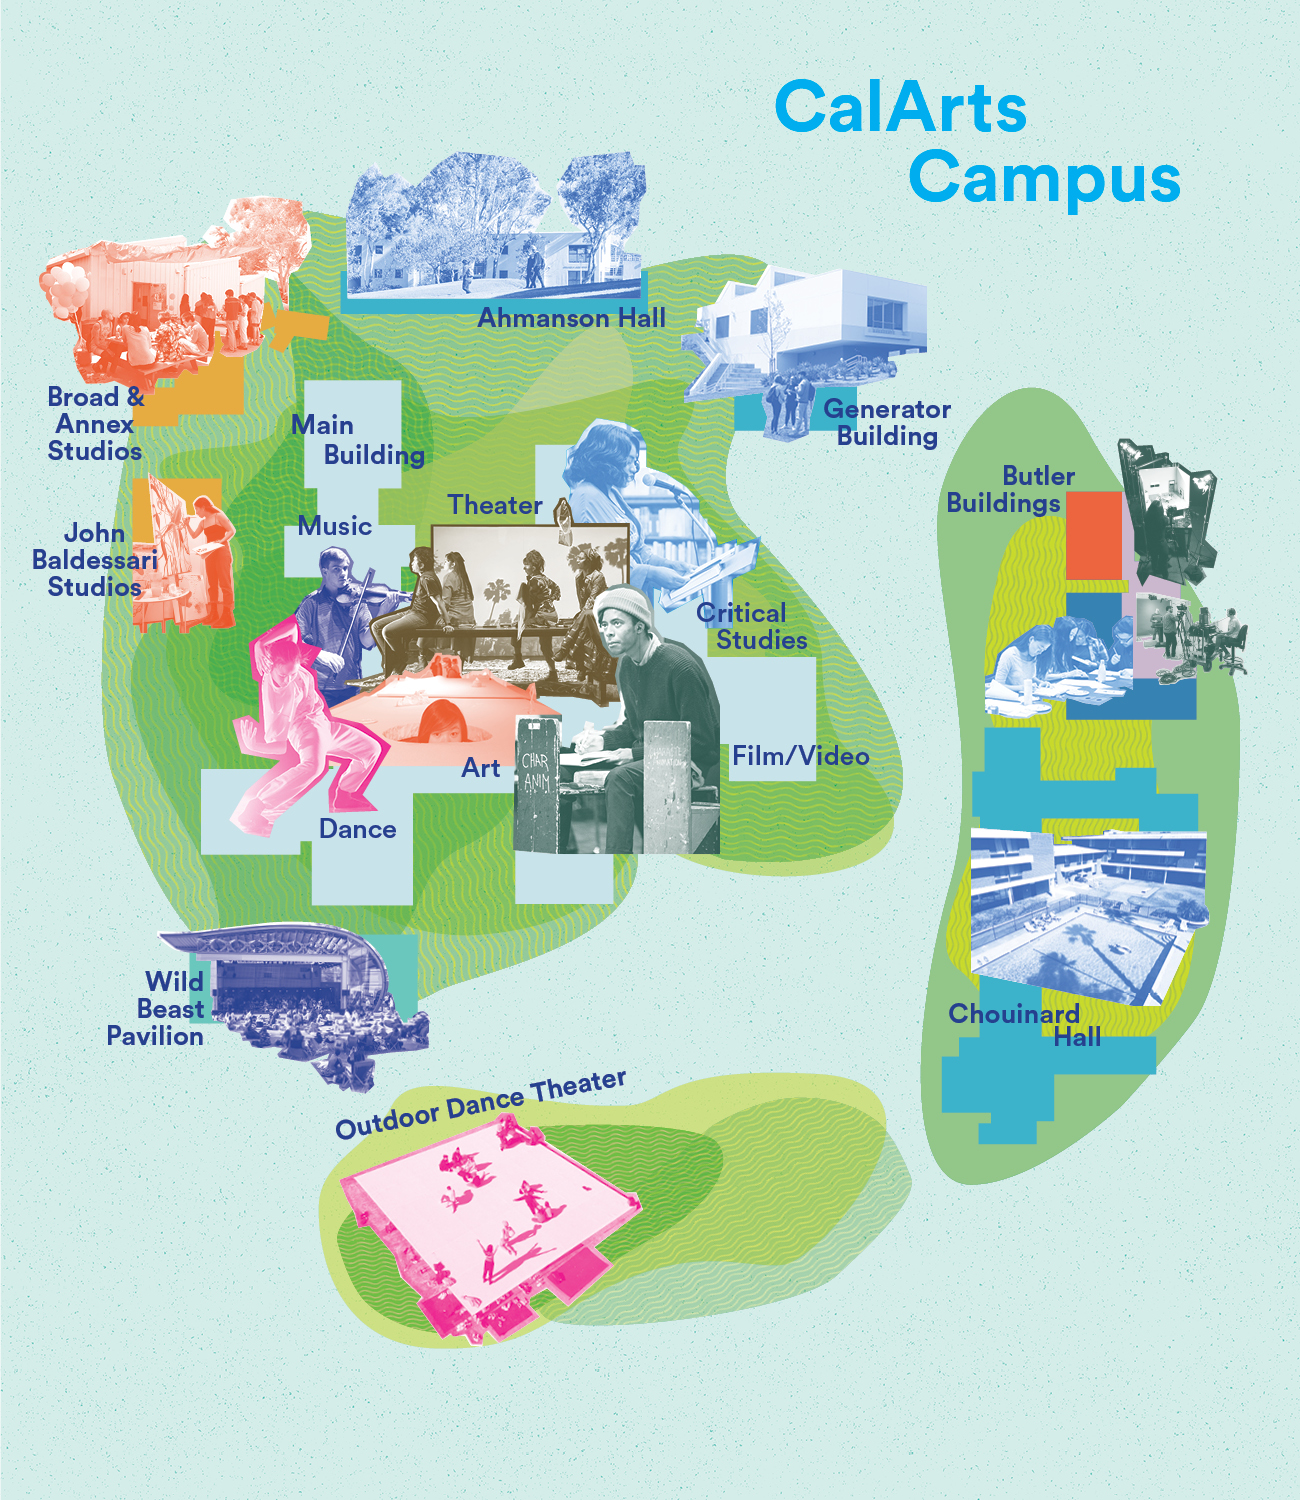 A Map of the CalArts Campus